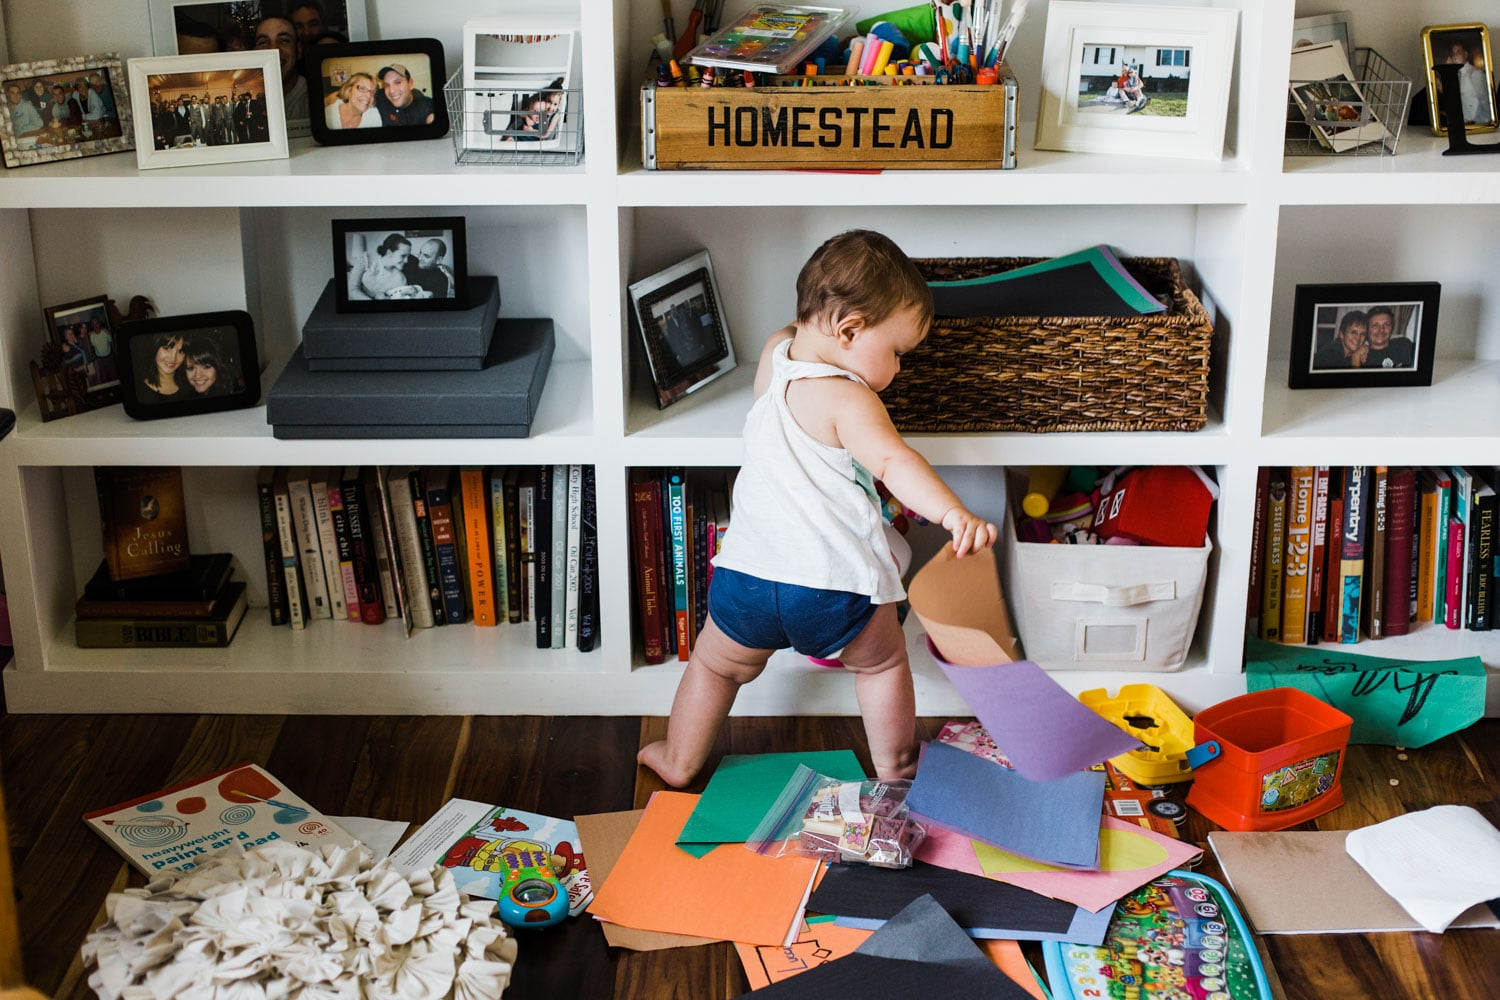 11 month ols girl making a mess of home living room